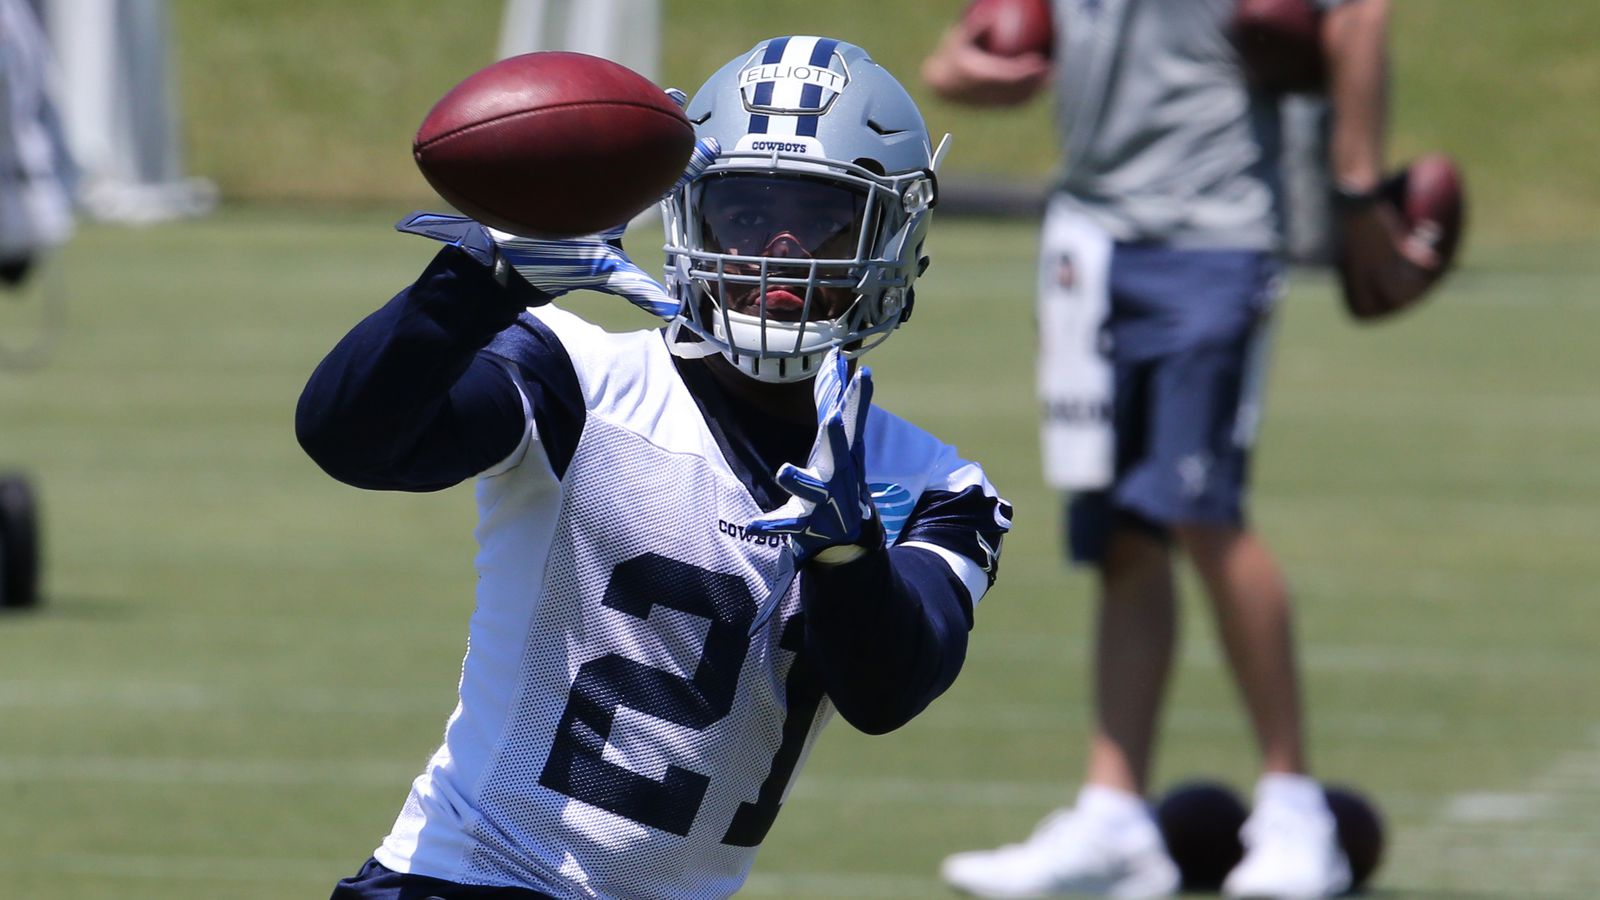 #Cowboys #News: #EzekielElliott signs rookie contract, #Cowboys lead charge to return NFL to rushing past #CowboysNation